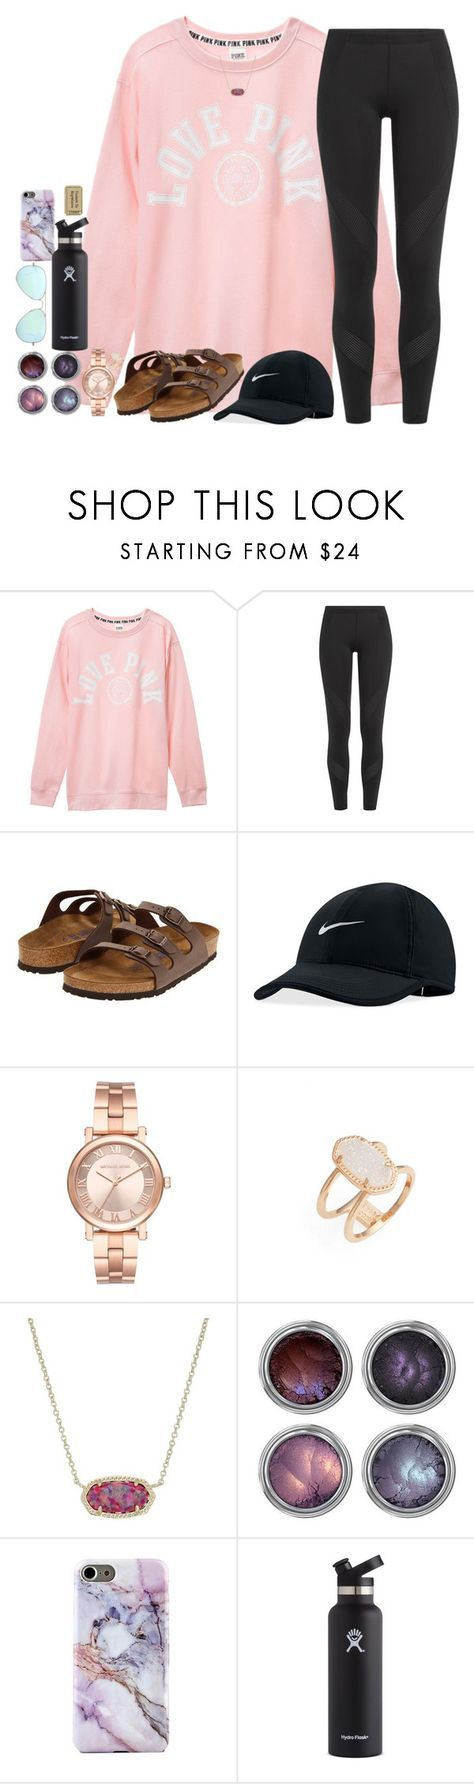 """"" by southernstruttin ❤ liked on Polyvore featuring Victoria's Secret, adidas, Birkenstock, NIKE, Michael Kors, Kendra Scott, Hydro Flask and Ray-Ban"